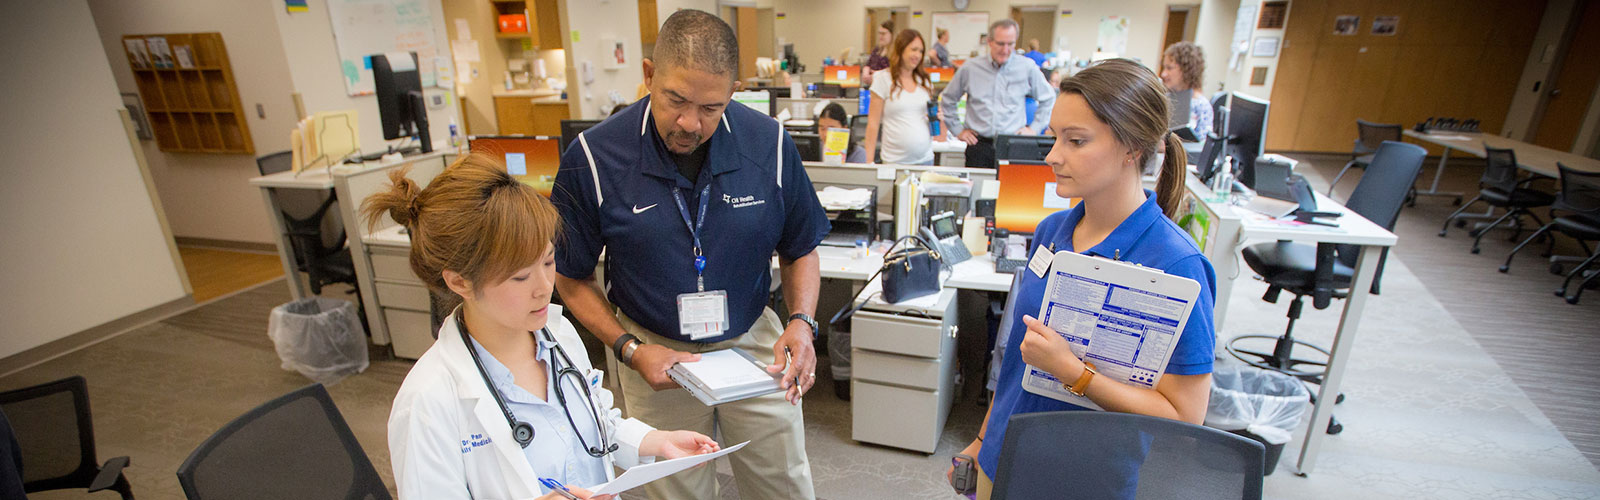 Doctor, physical therapist and nursing student in collaborative setting